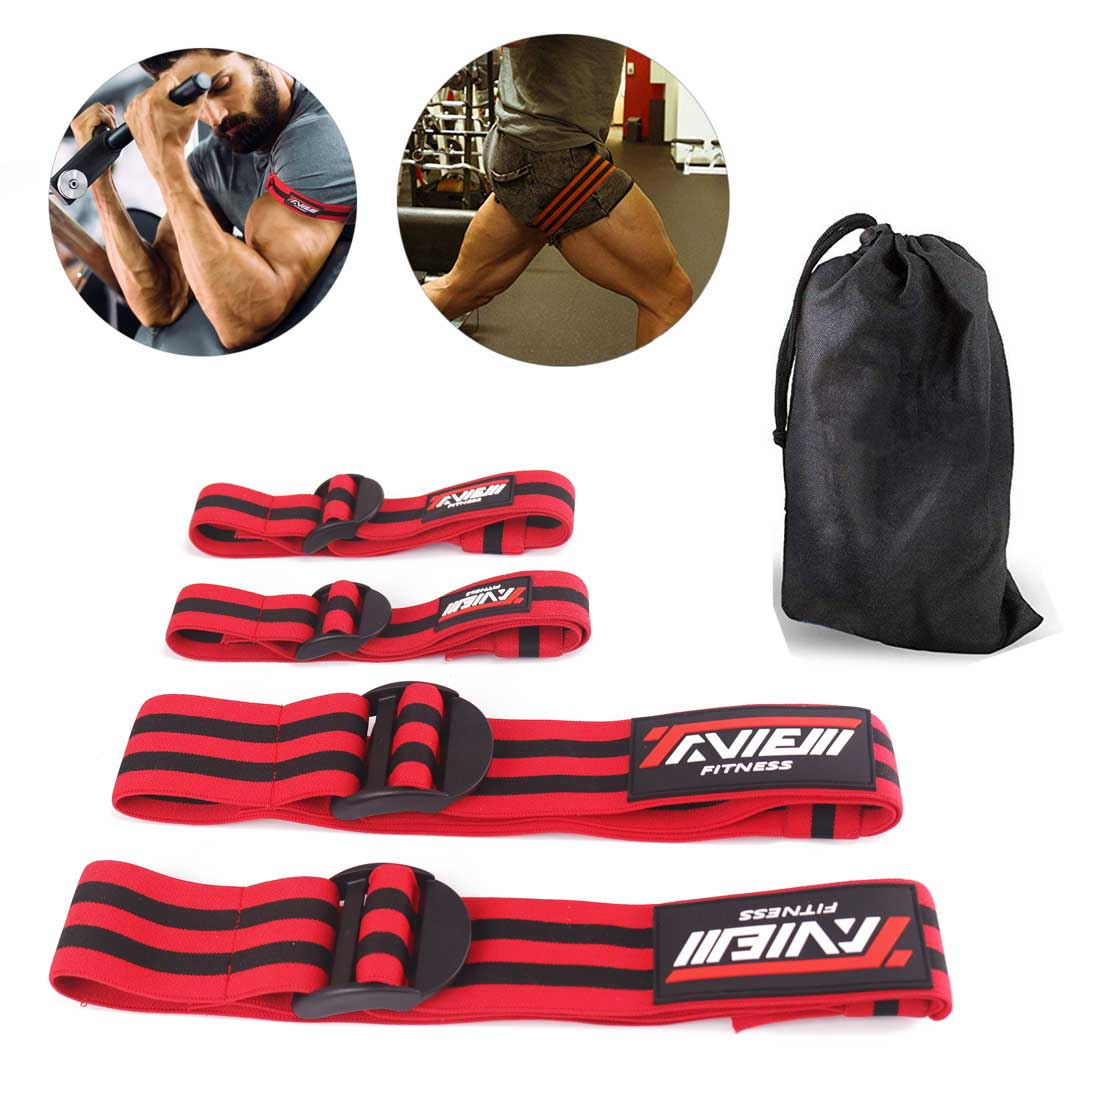 Fitness Occlusion Bands Bodybuilding Weight Blood Flow Restriction Bands Arm Leg Wraps Fast Muscle Growth Gym Equipment